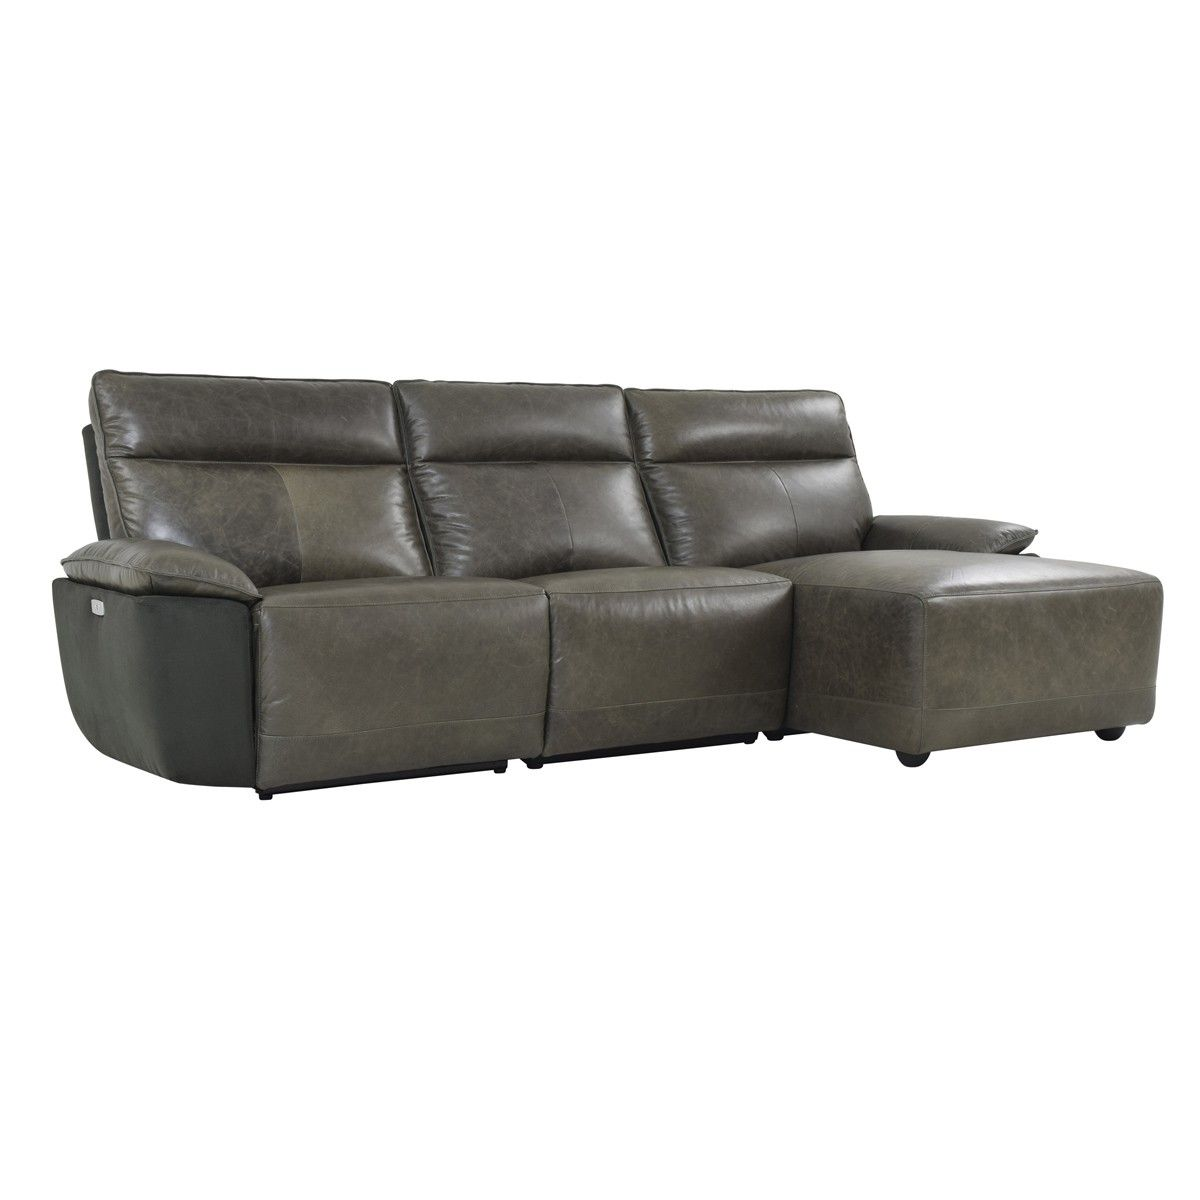 Colton Sectional w/RAF Chaise  sc 1 st  Pinterest : cantoni sectional - Sectionals, Sofas & Couches